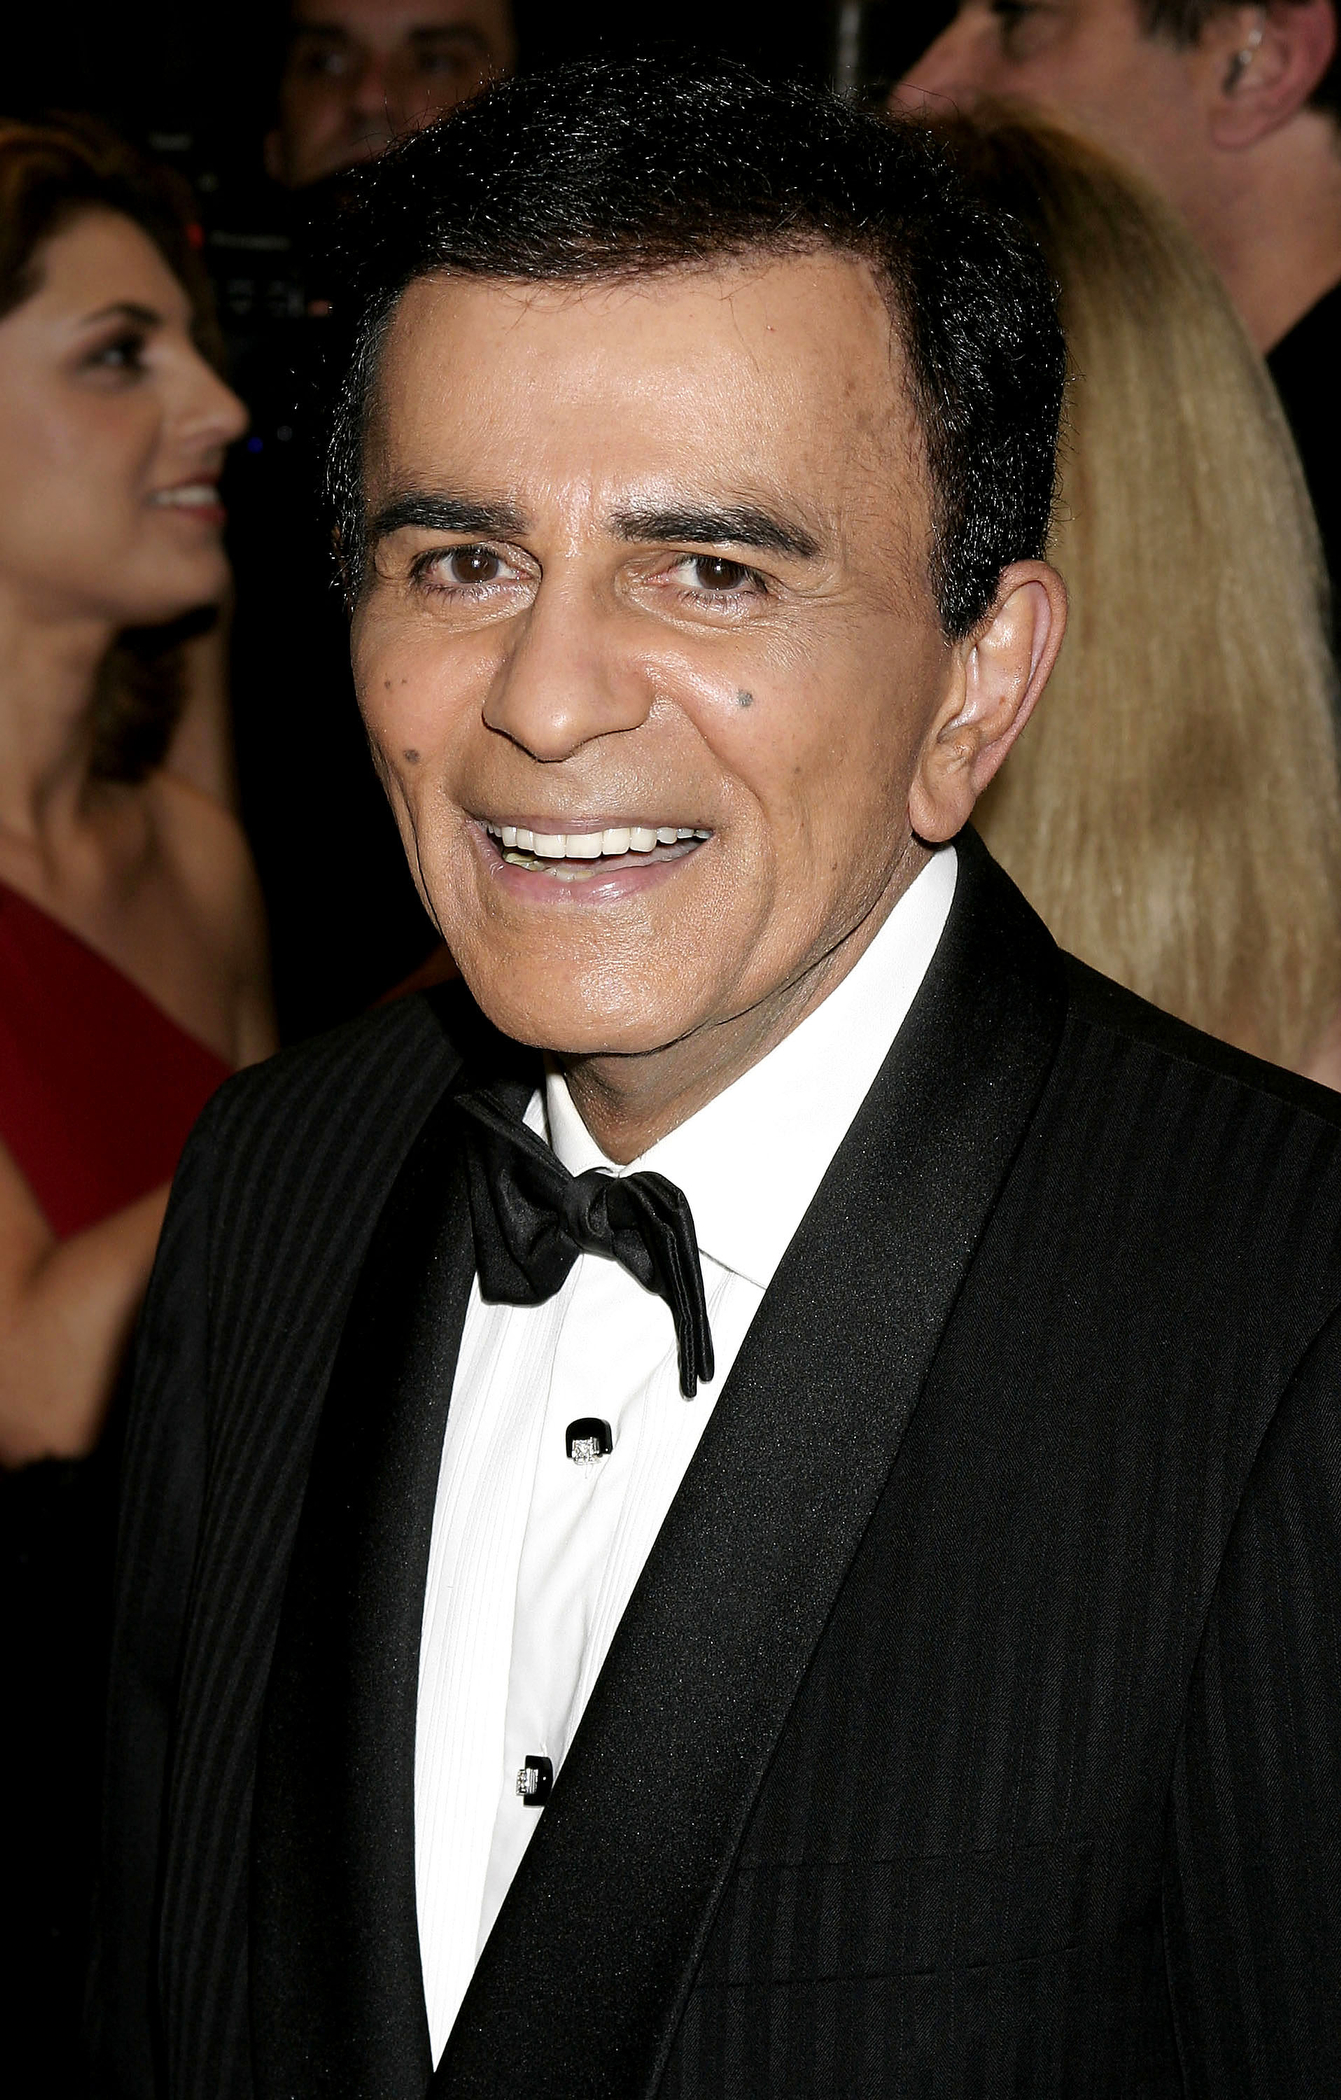 Casey Kasem arrives at the 13th Annual Night of 100 Stars Oscar Viewing Black Tie Gala, Feb. 29, 2004 at the Beverly Hills Hotel in Beverly Hills, California.